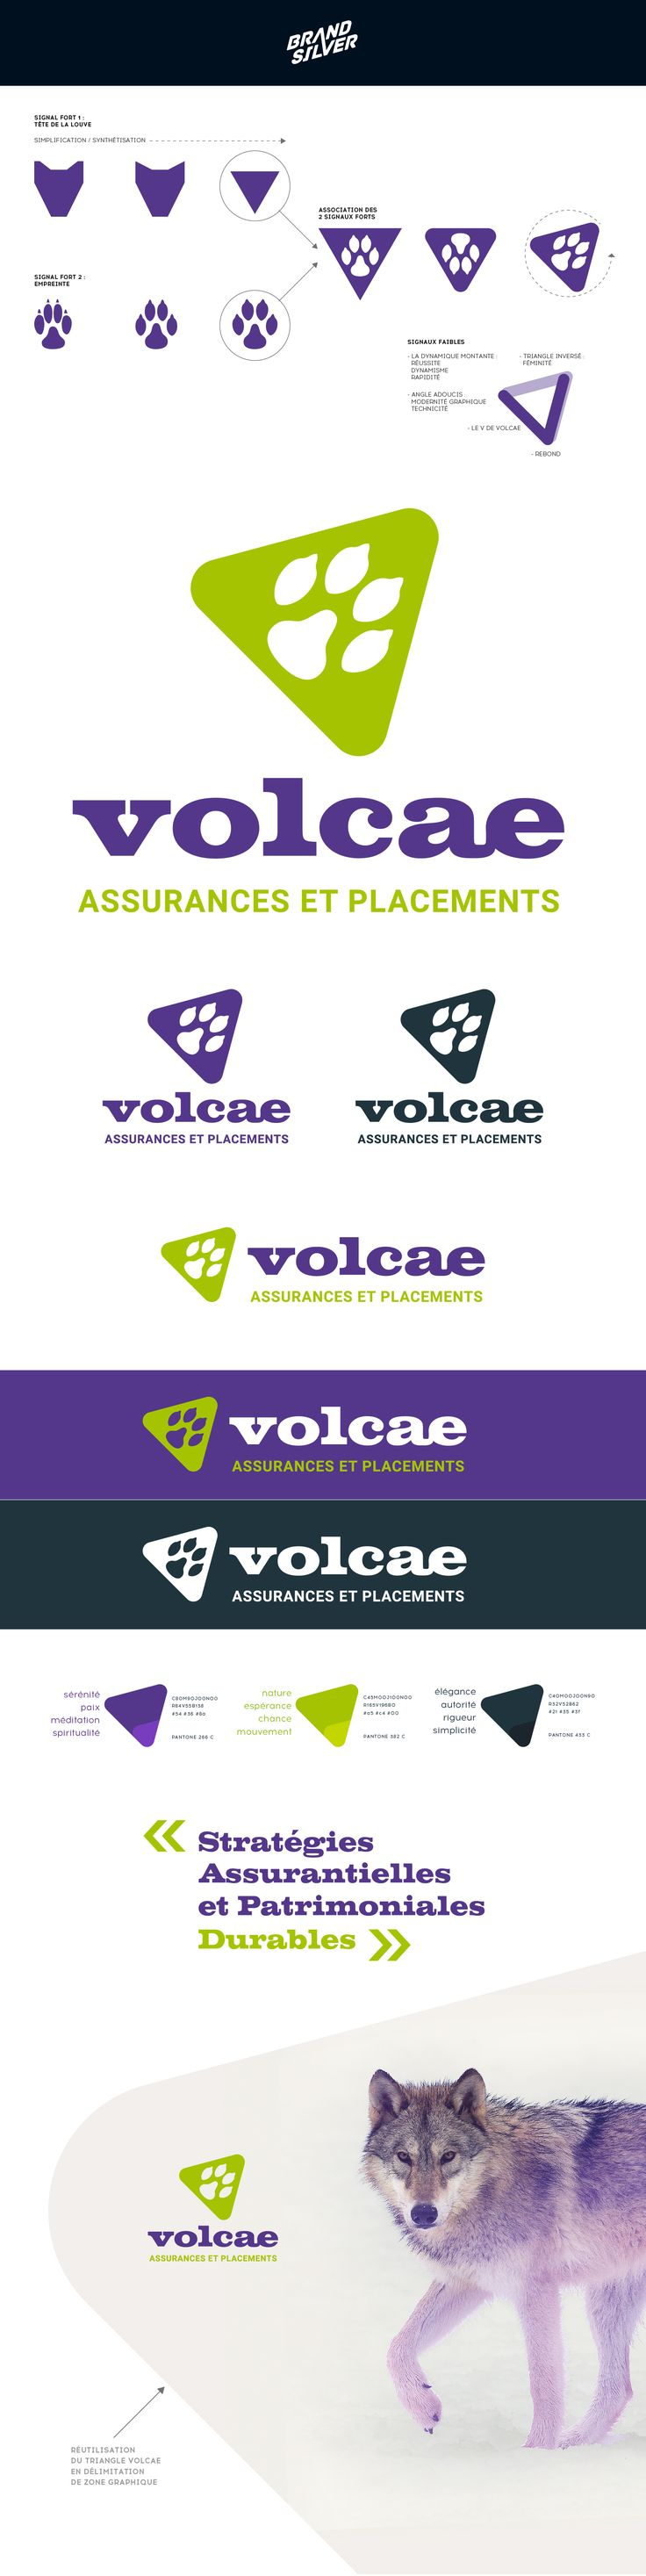 Wolf - Volcae new brand 2017 - Insurance and Investments